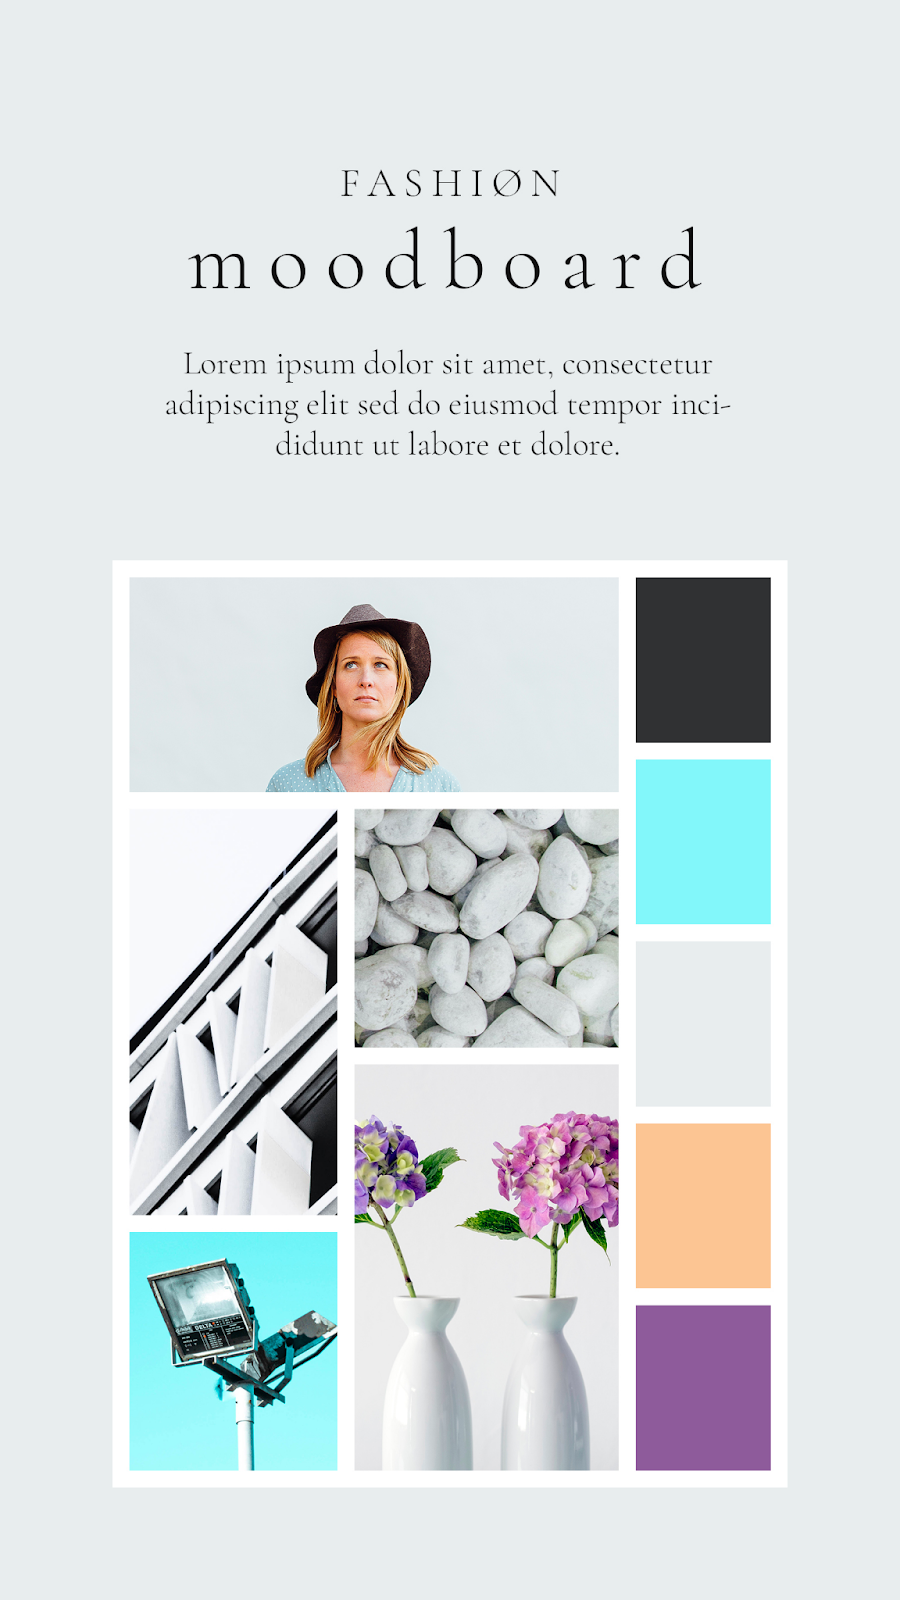 Graphics Eggs Fashion Moodboard Instagram Stories Templates